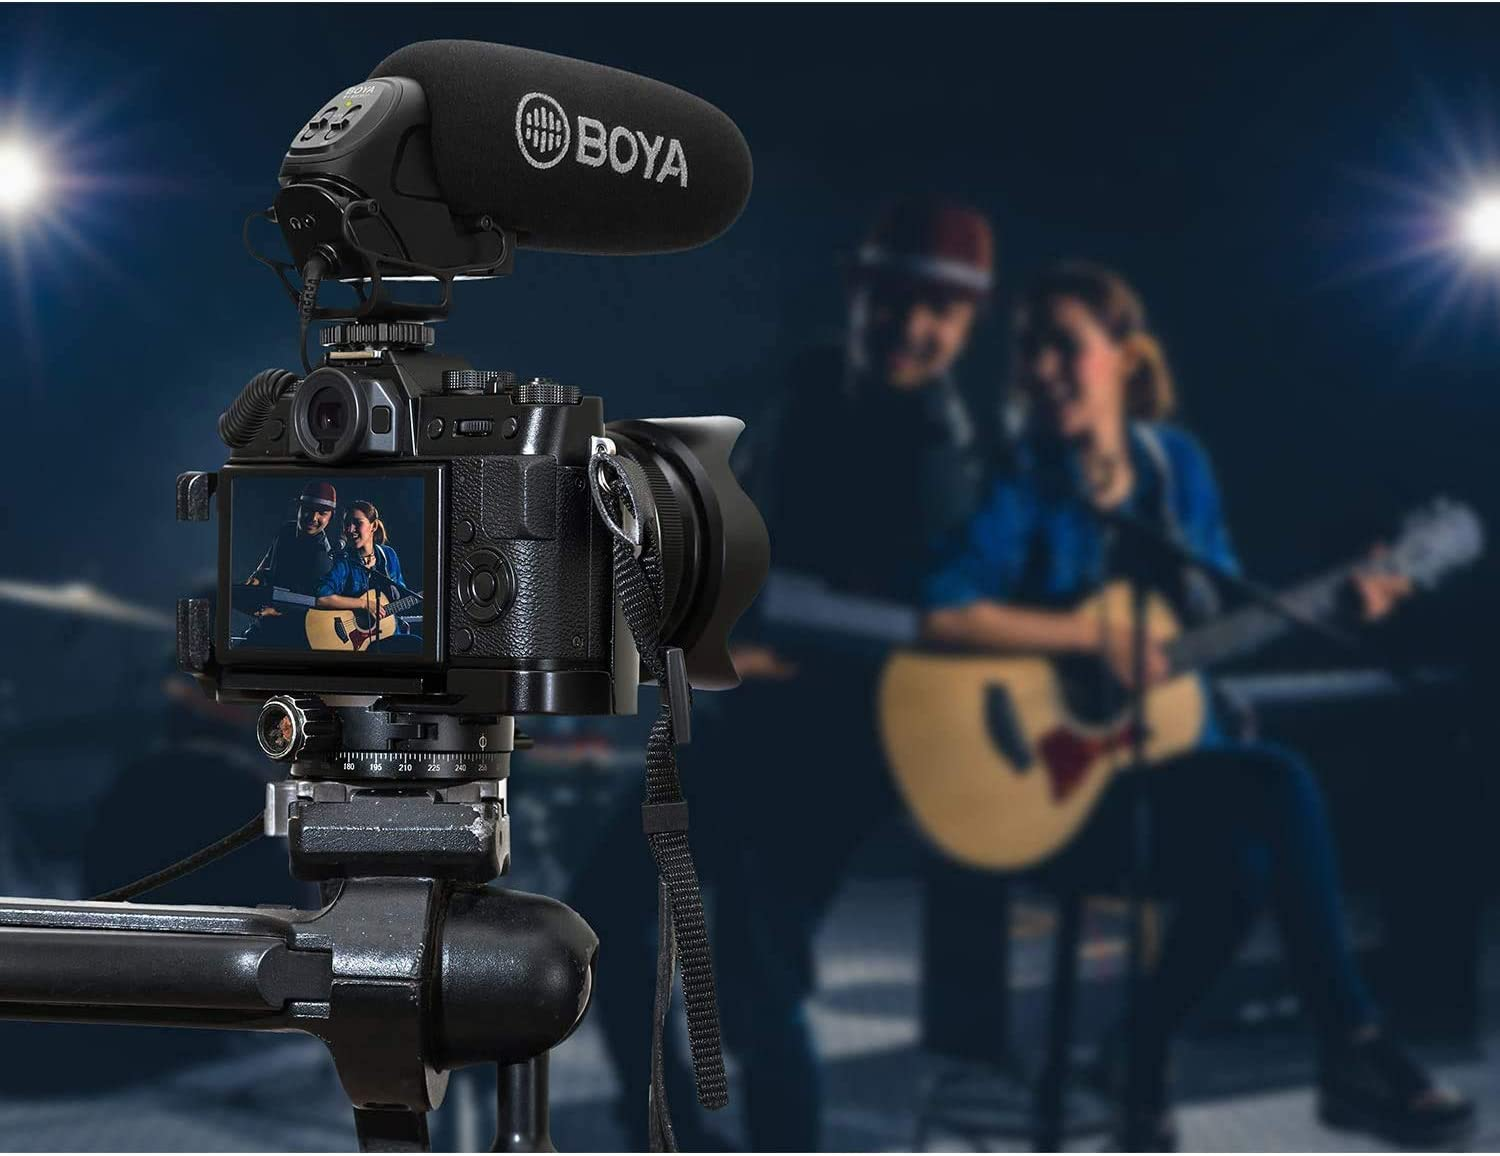 BOYA BY-BM3032 Super-Cardioid On-Camera Video Shotgun Microphone Broadcast Condenser Interview Capacitive Microphone Camera Video Mic Compatible with Canon Nikon Sony DSLR Cameras and Camcorder